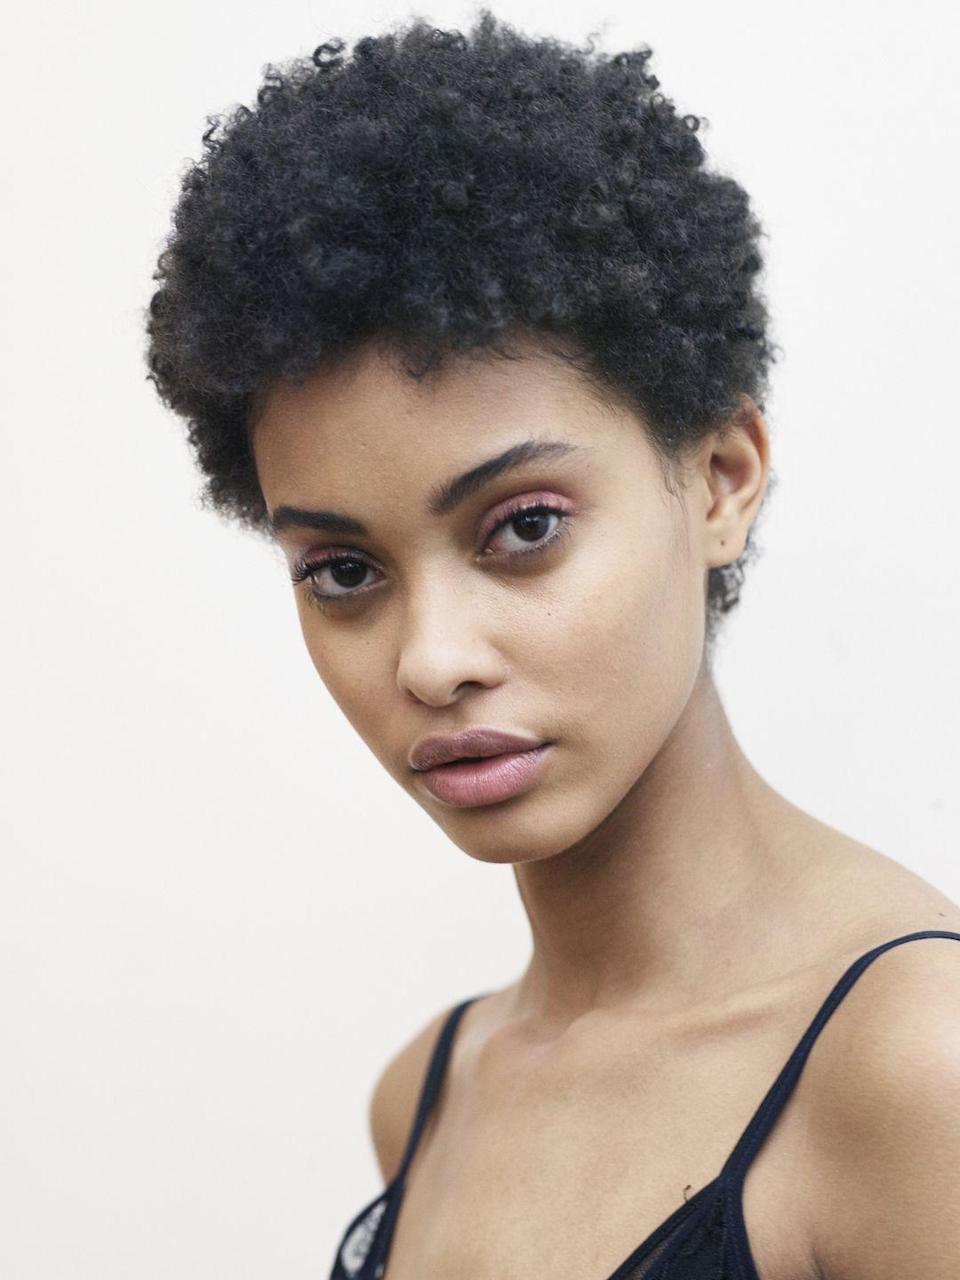 <p>If you're looking for a low-maintenance style, this cut is for you. Model <strong>Samile Bermannelli's </strong>cut is short along the back and sides with va-va-volume on top so styling is essentially done for you. </p>